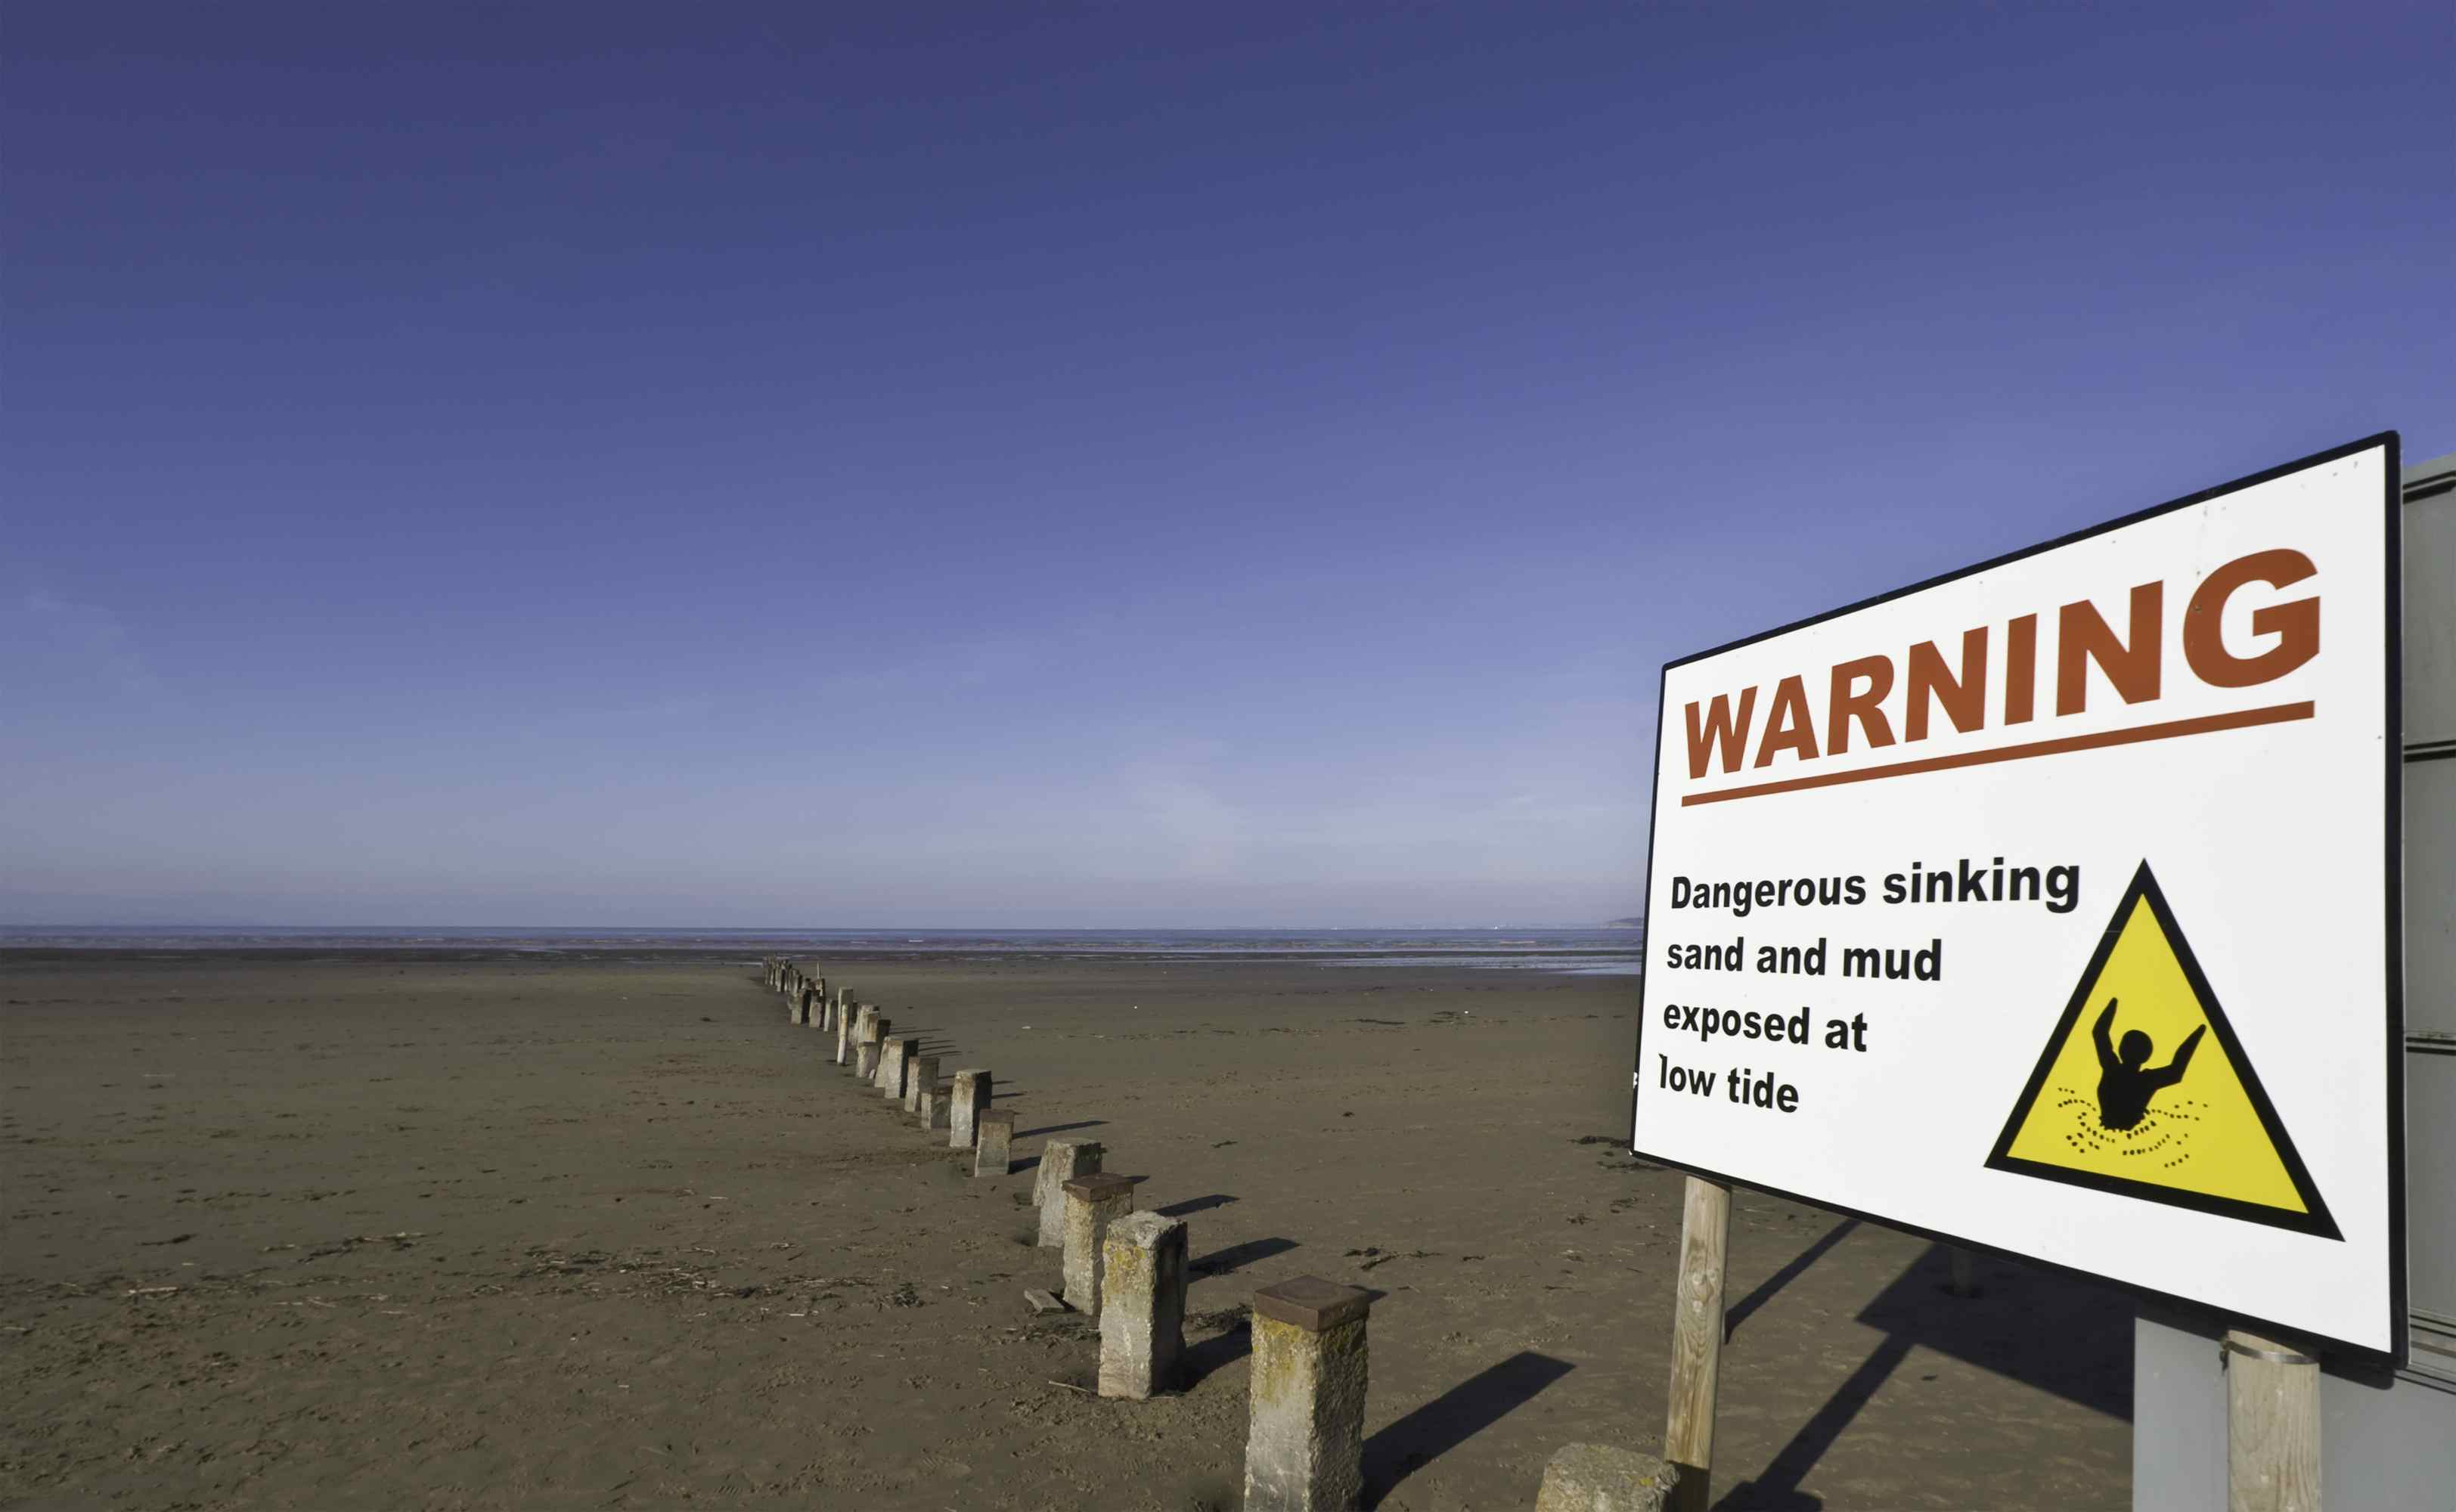 Quicksand may occur anywhere, but places prone to it often post warning signs.